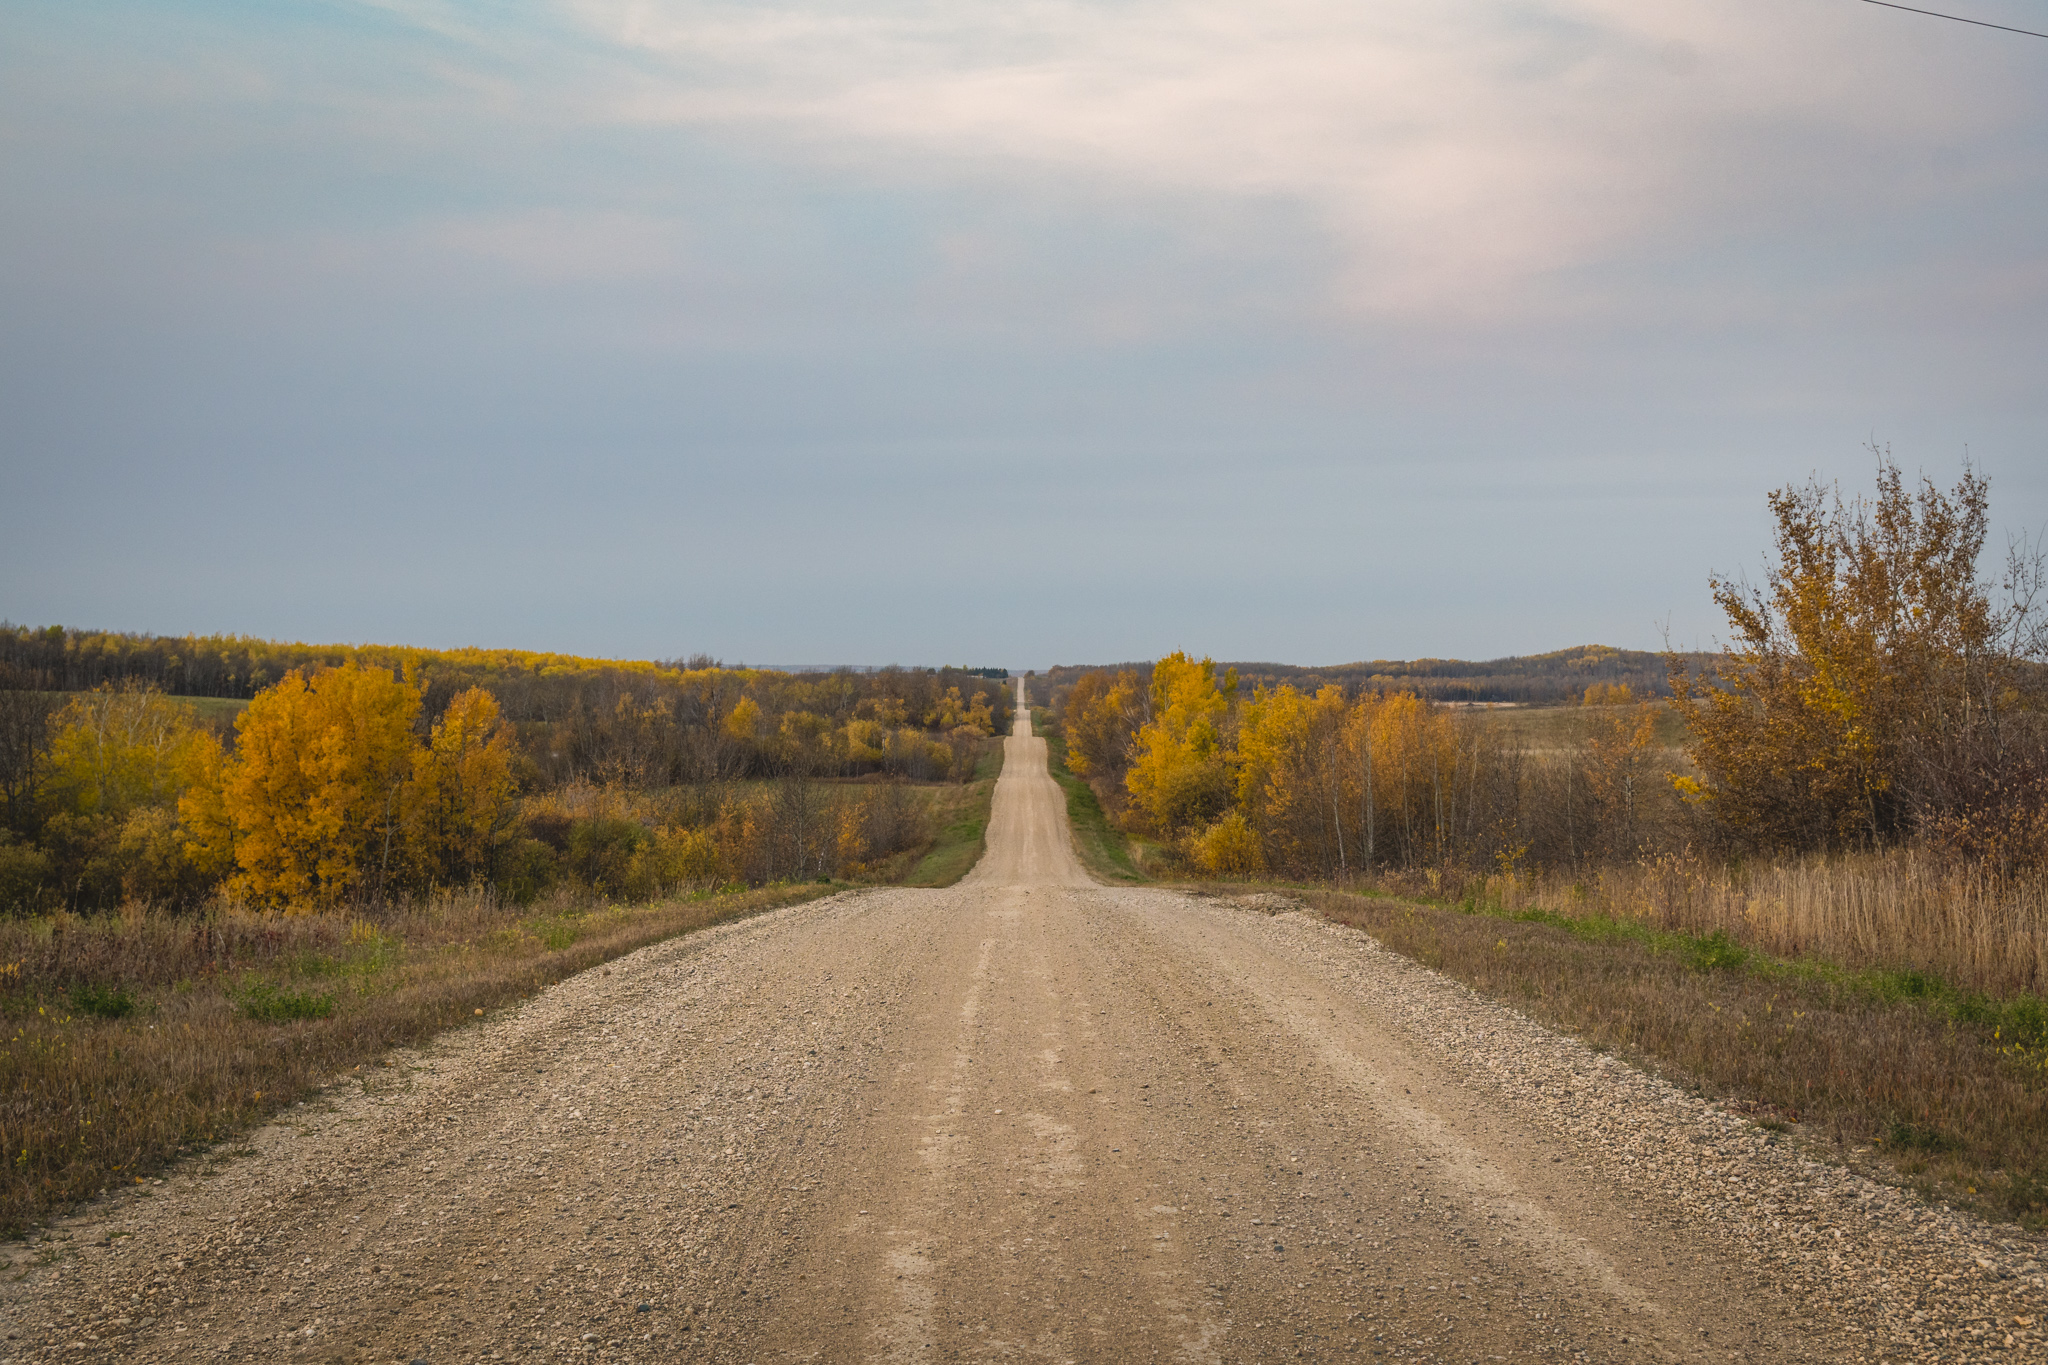 The long road to town.